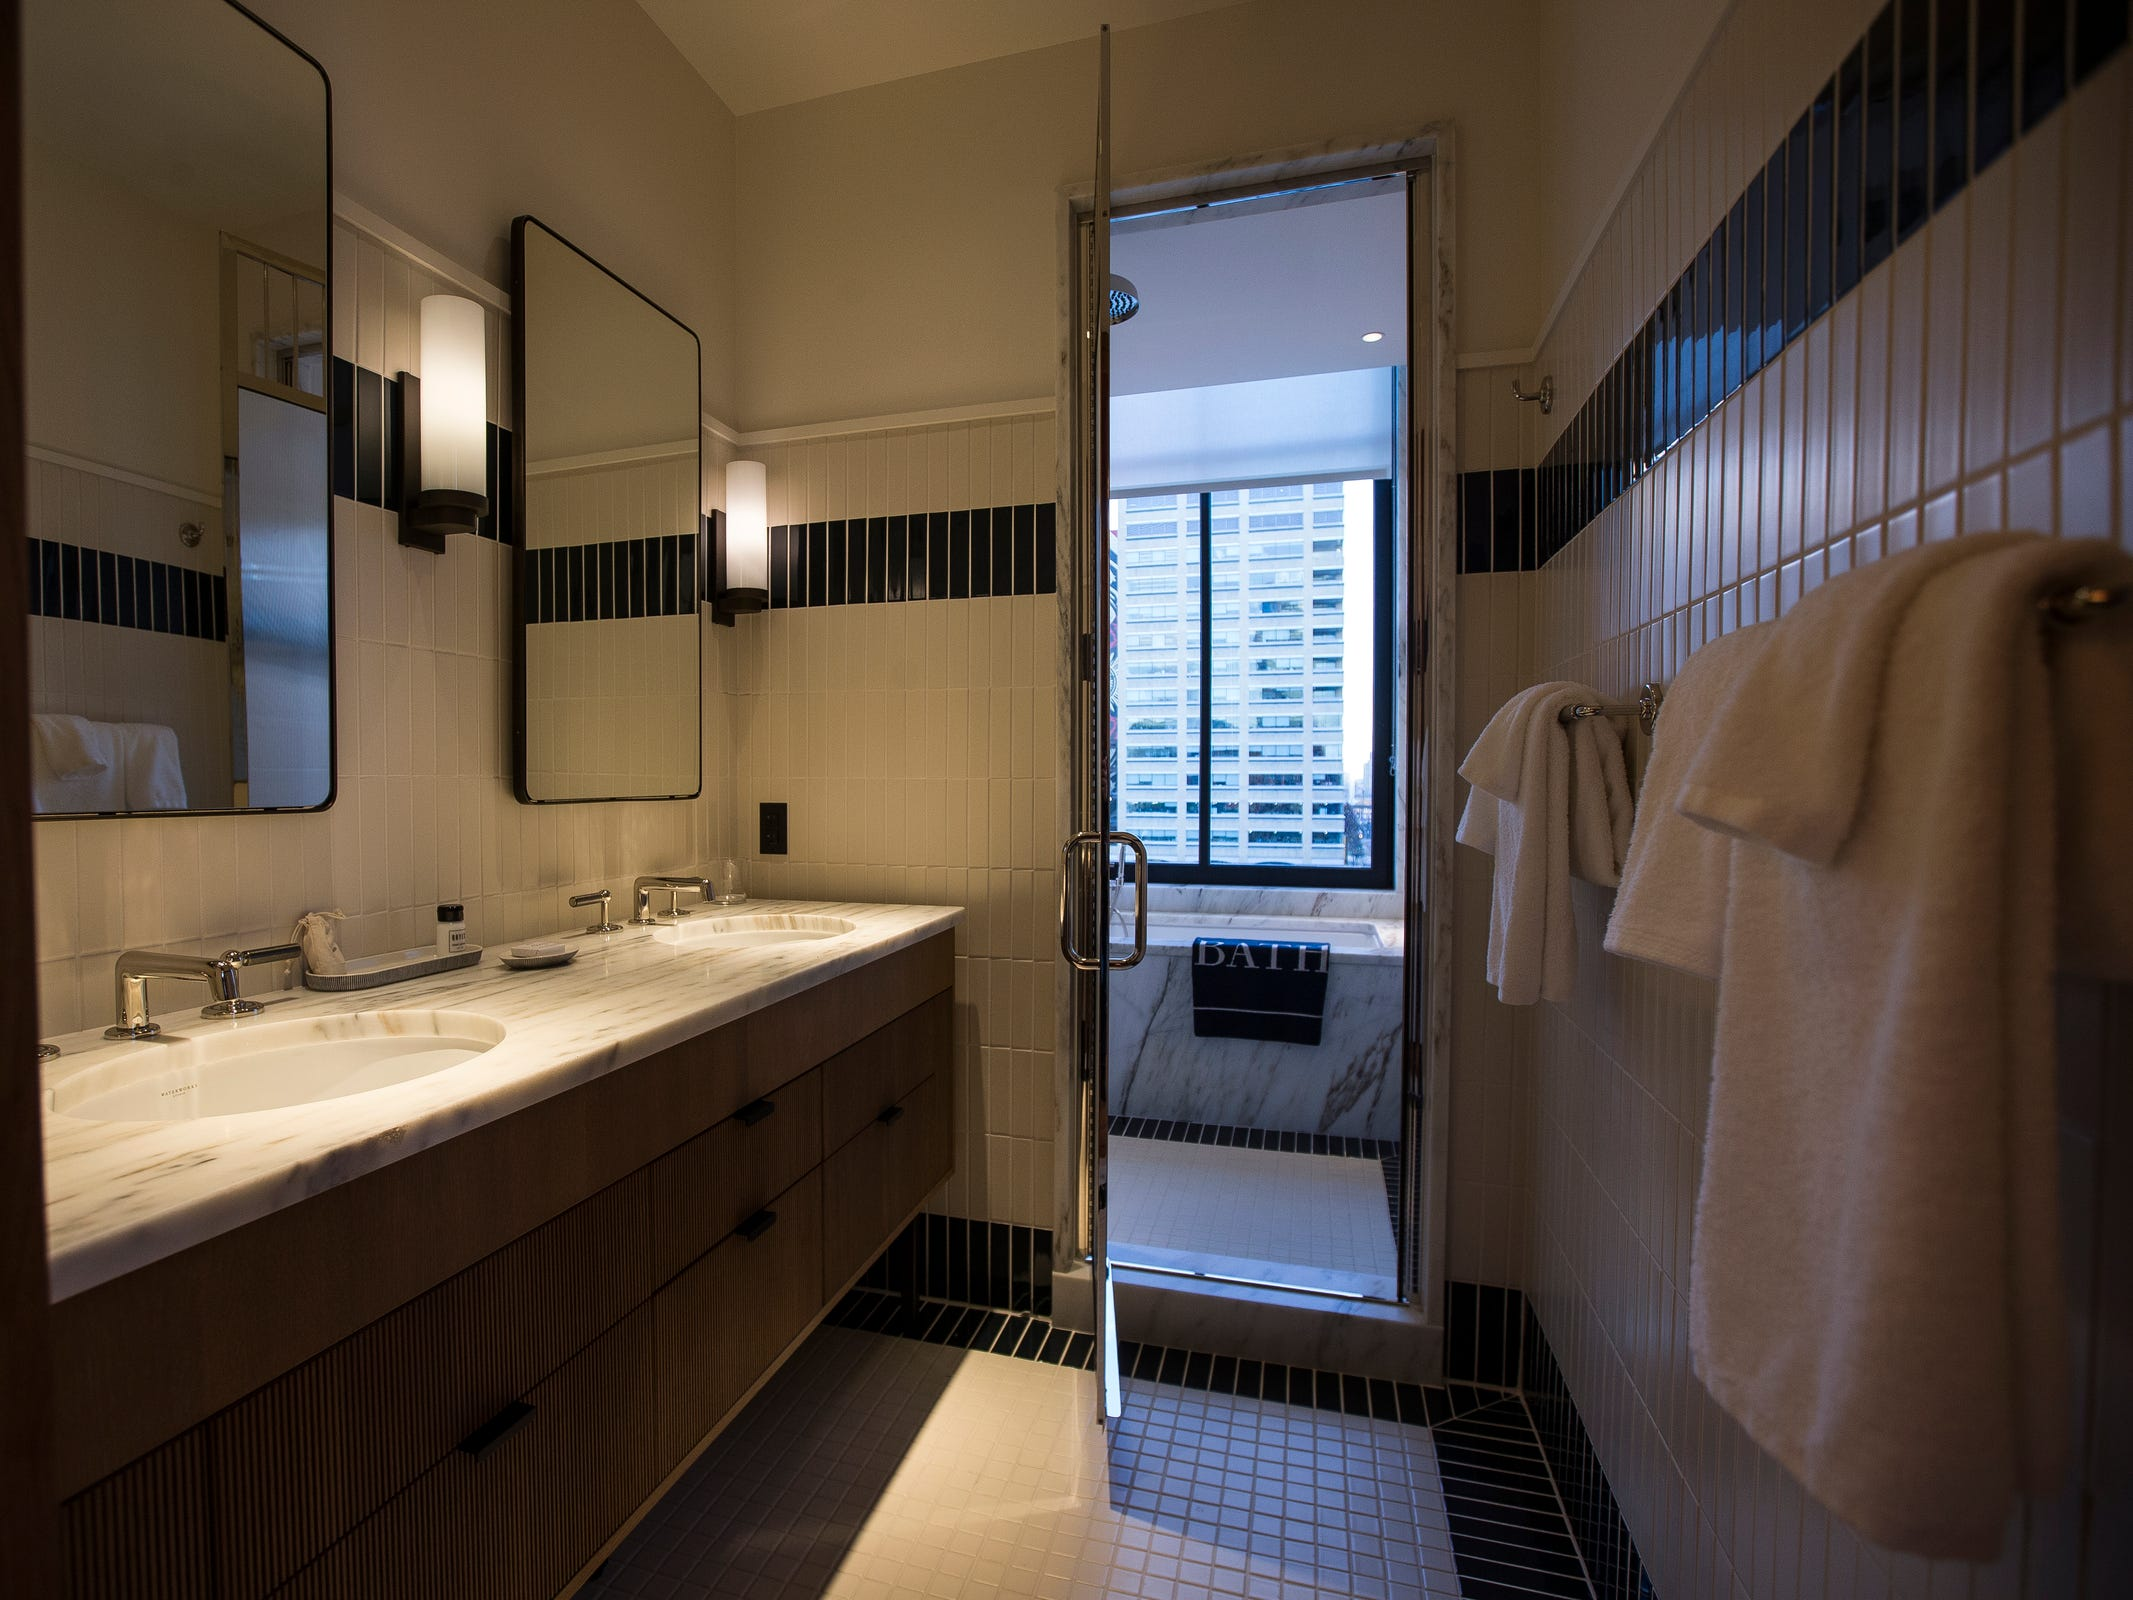 Bathroom in a gallery style guest room in the Shinola Hotel in downtown Detroit, Dec. 18, 2018. There are 15 different styles of guest rooms in the Shinola Hotel.